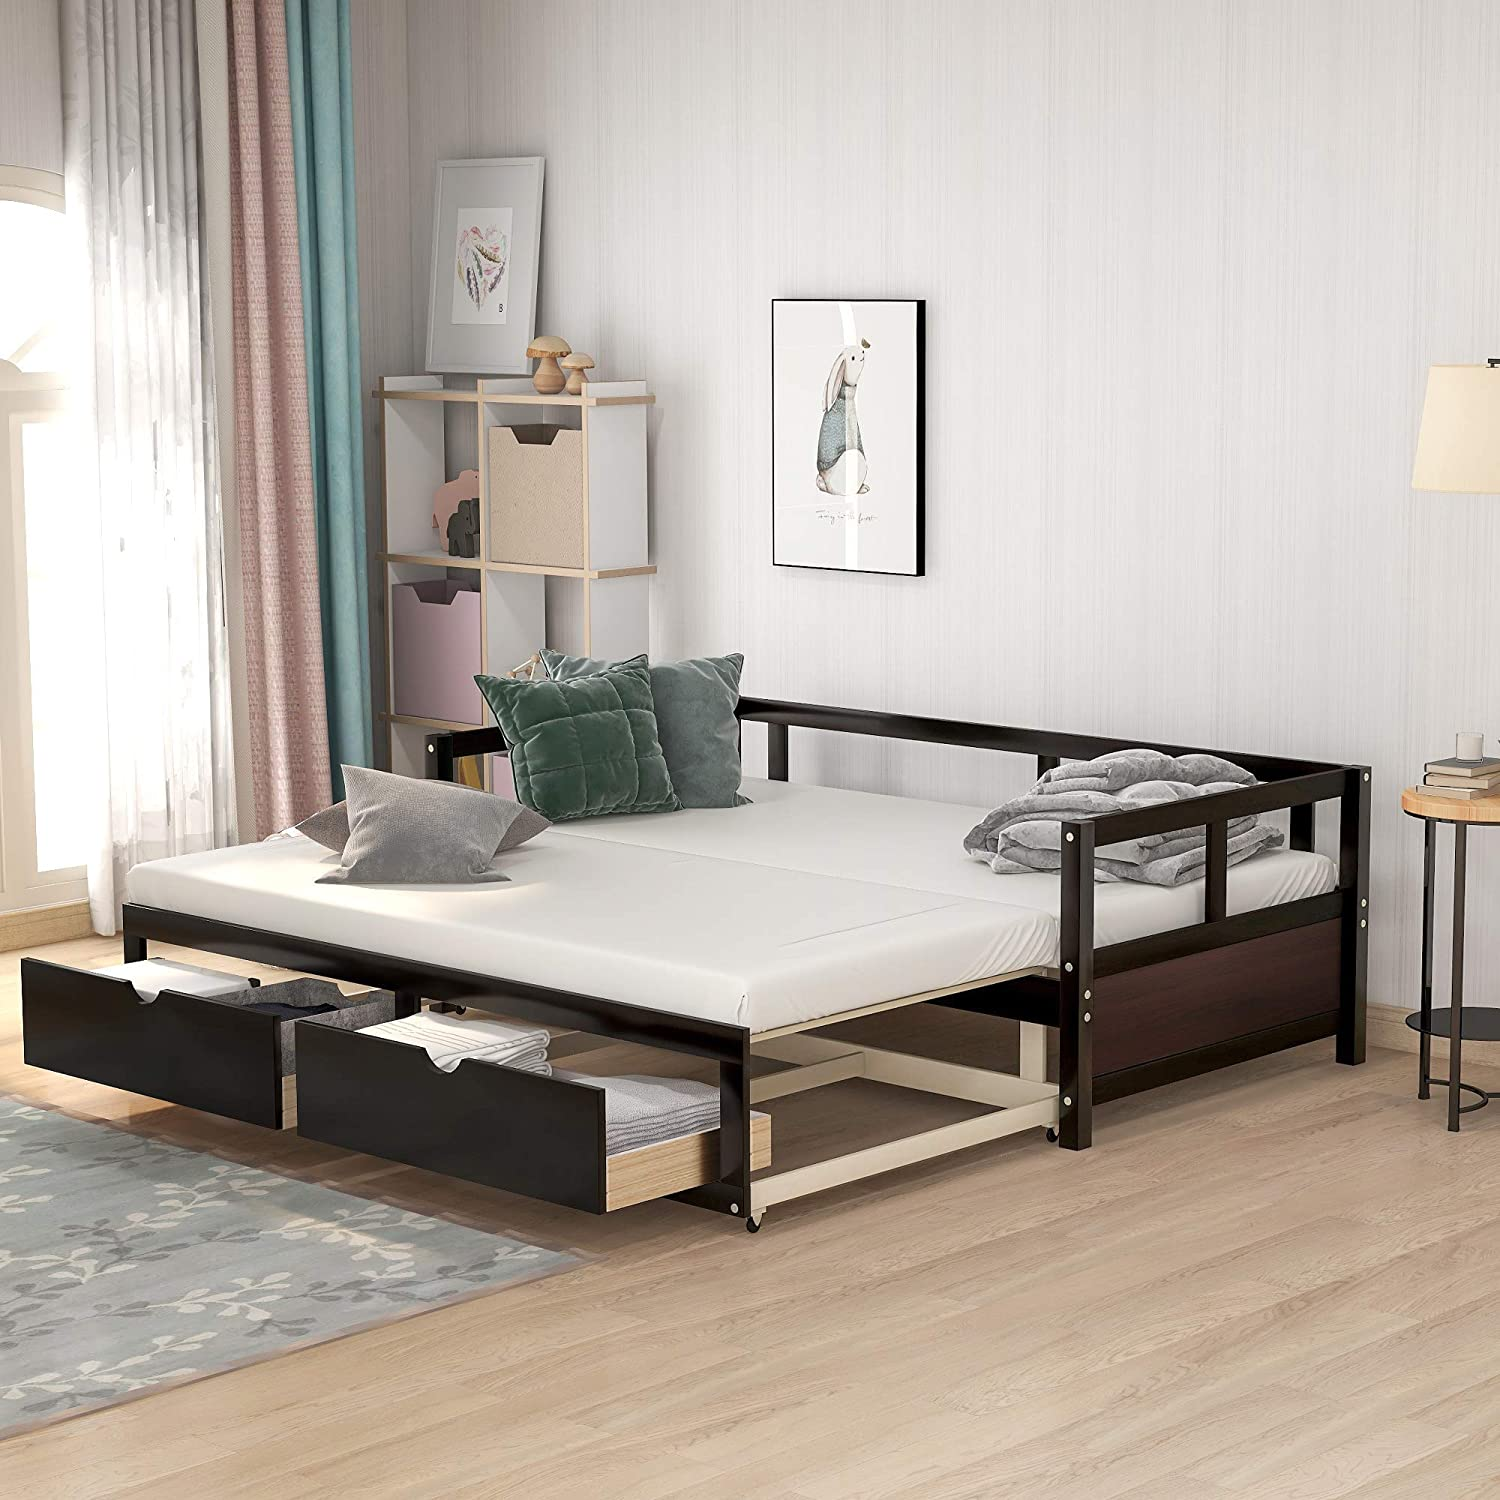 Aveland Shop Spasm price Extendable Twin to with Trundle Frame King Max 64% OFF Daybed